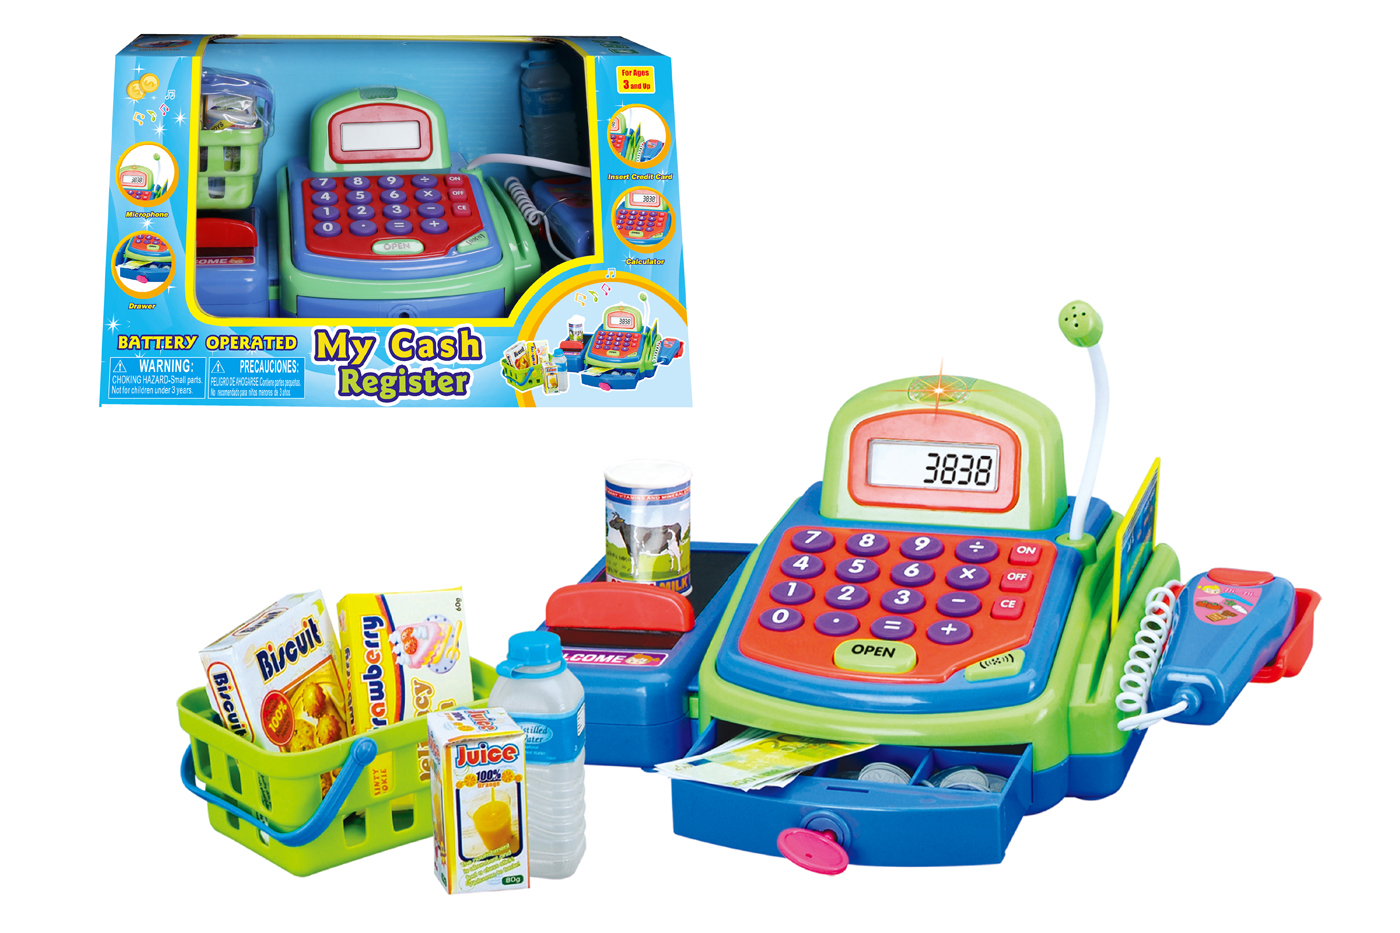 Educational Battery Operated Cash Register Play Set (Green) [1940353]